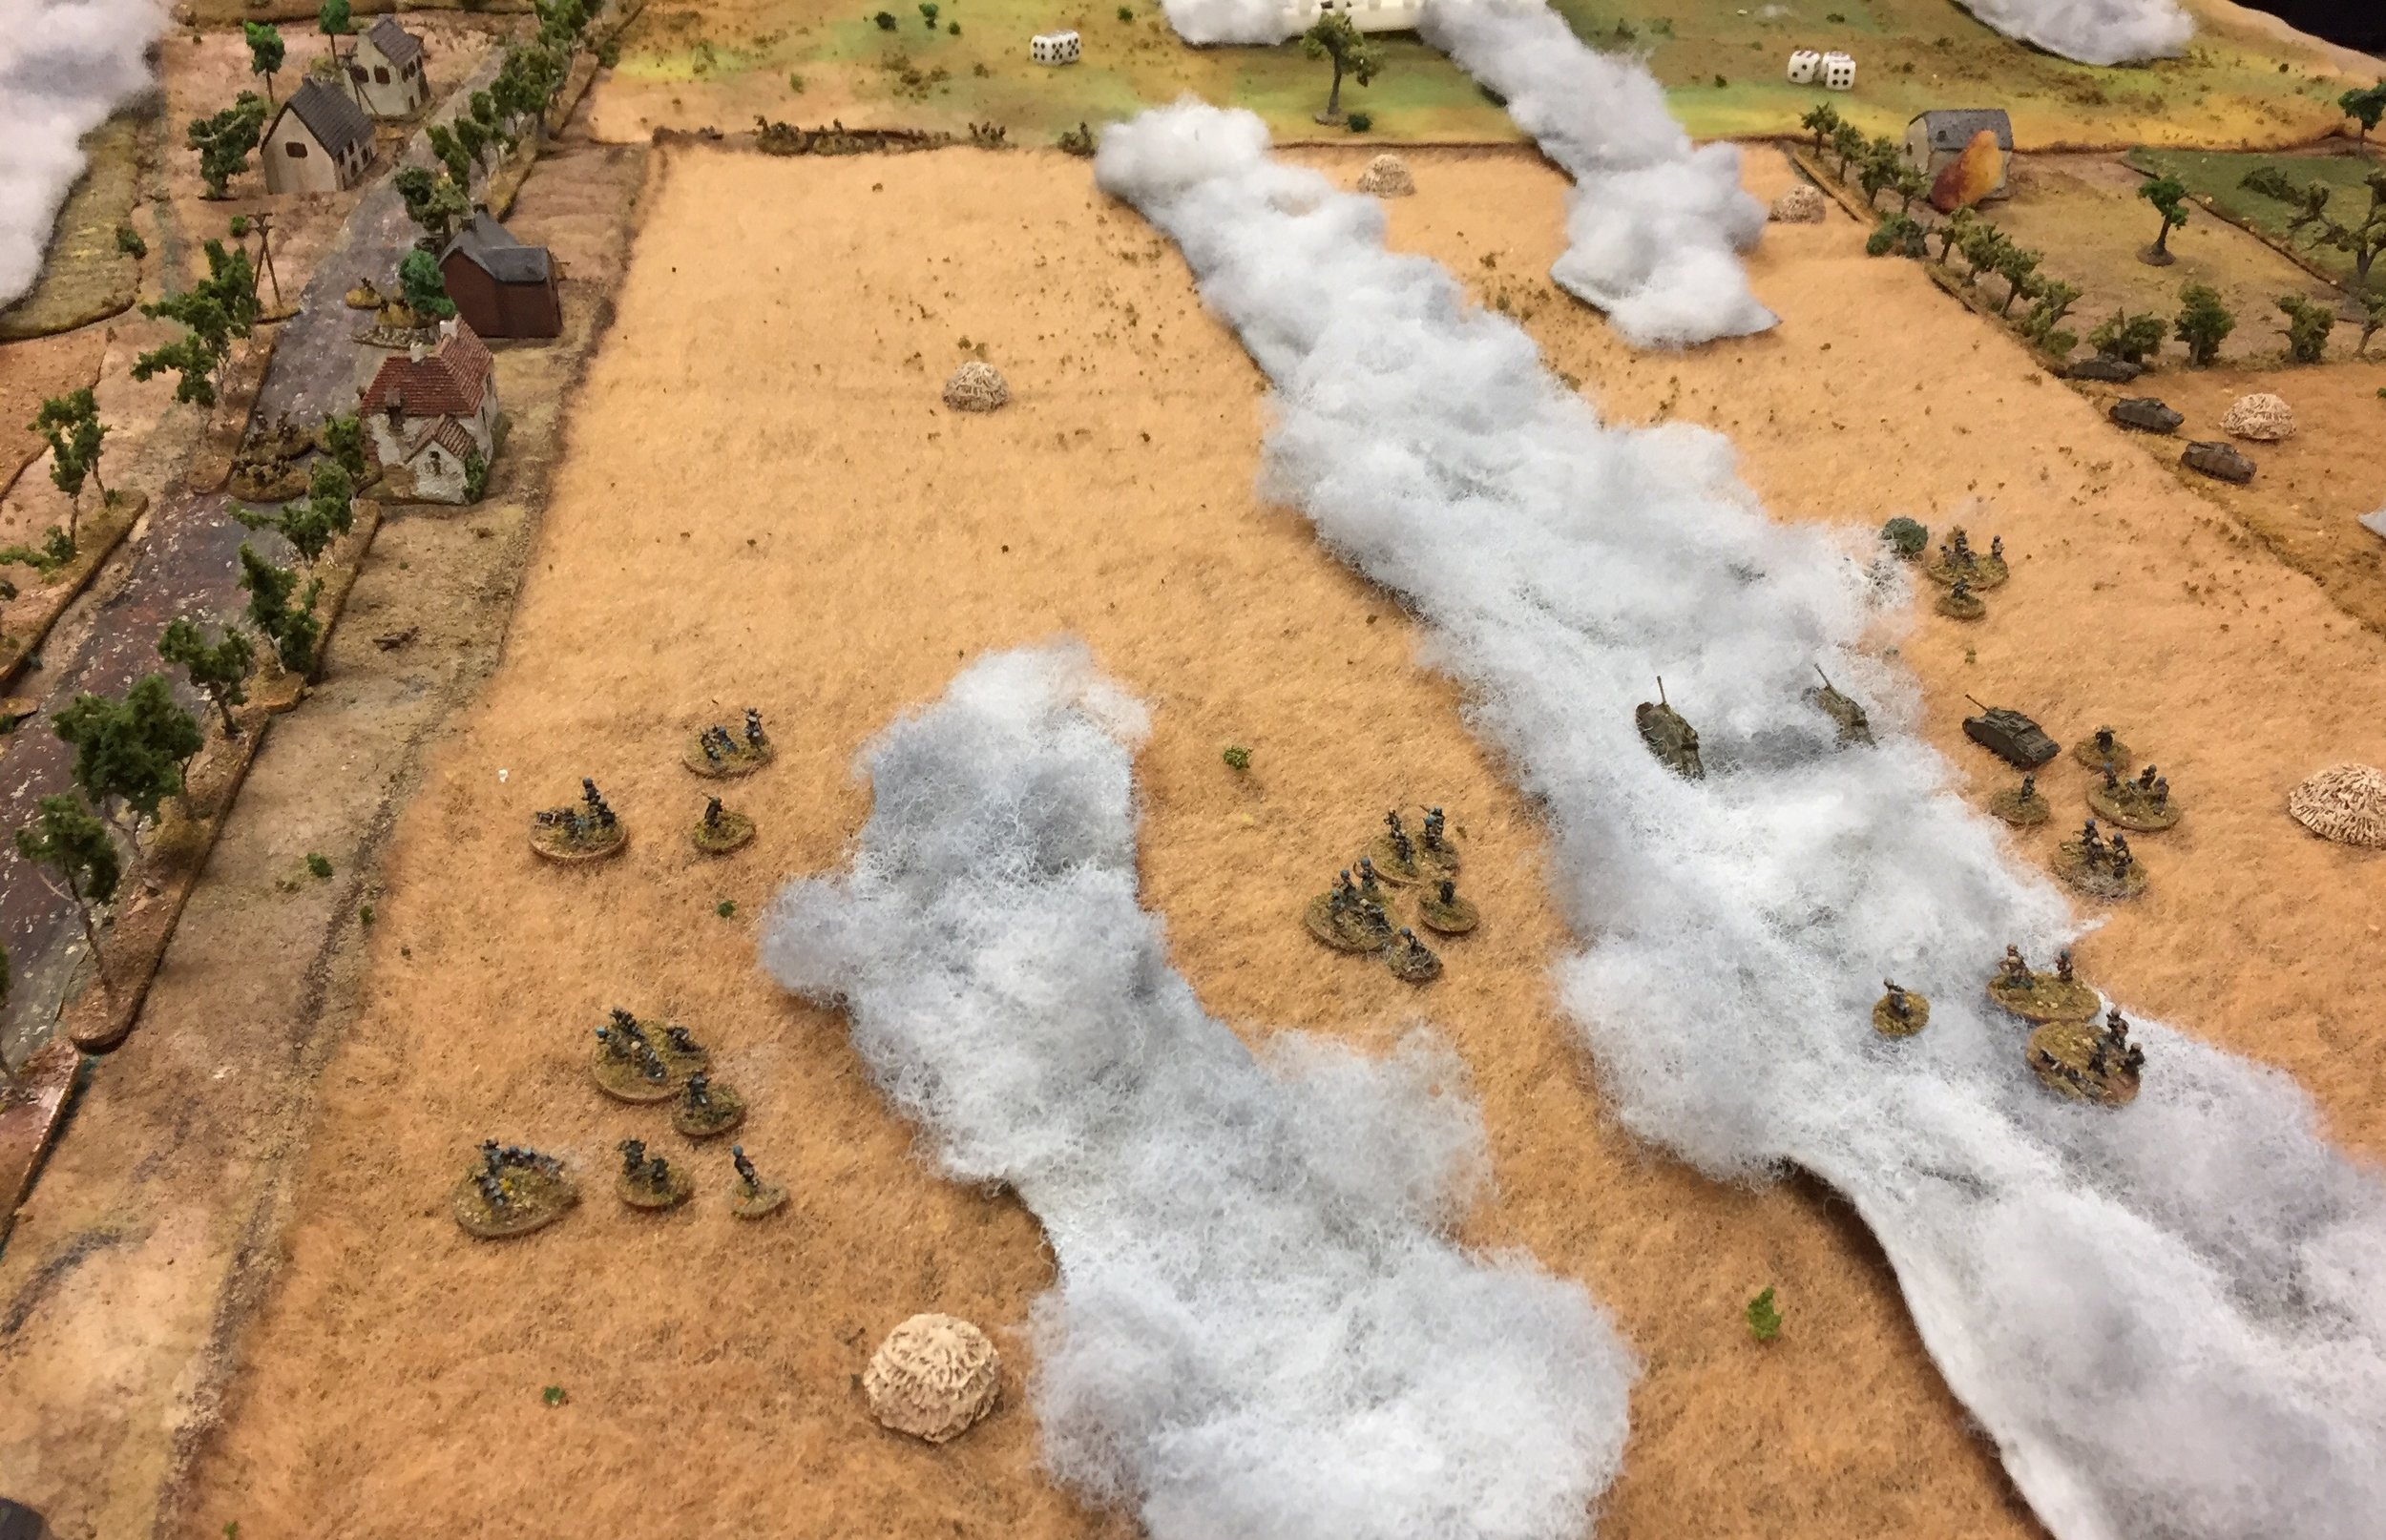 Germans Heading Towards the Road and Buildings